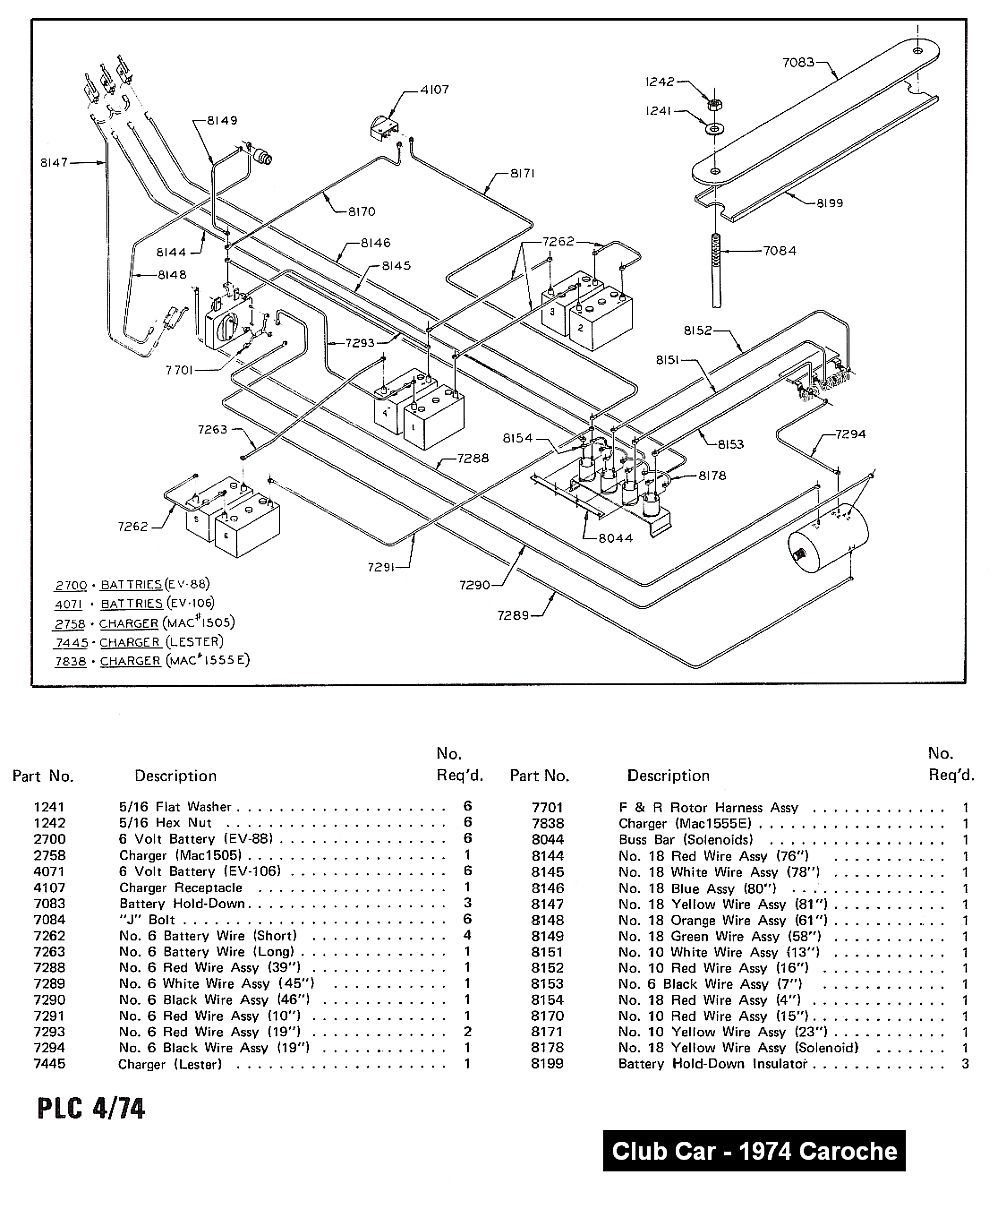 CC_74_Caroche vintagegolfcartparts com club car wiring diagram at soozxer.org